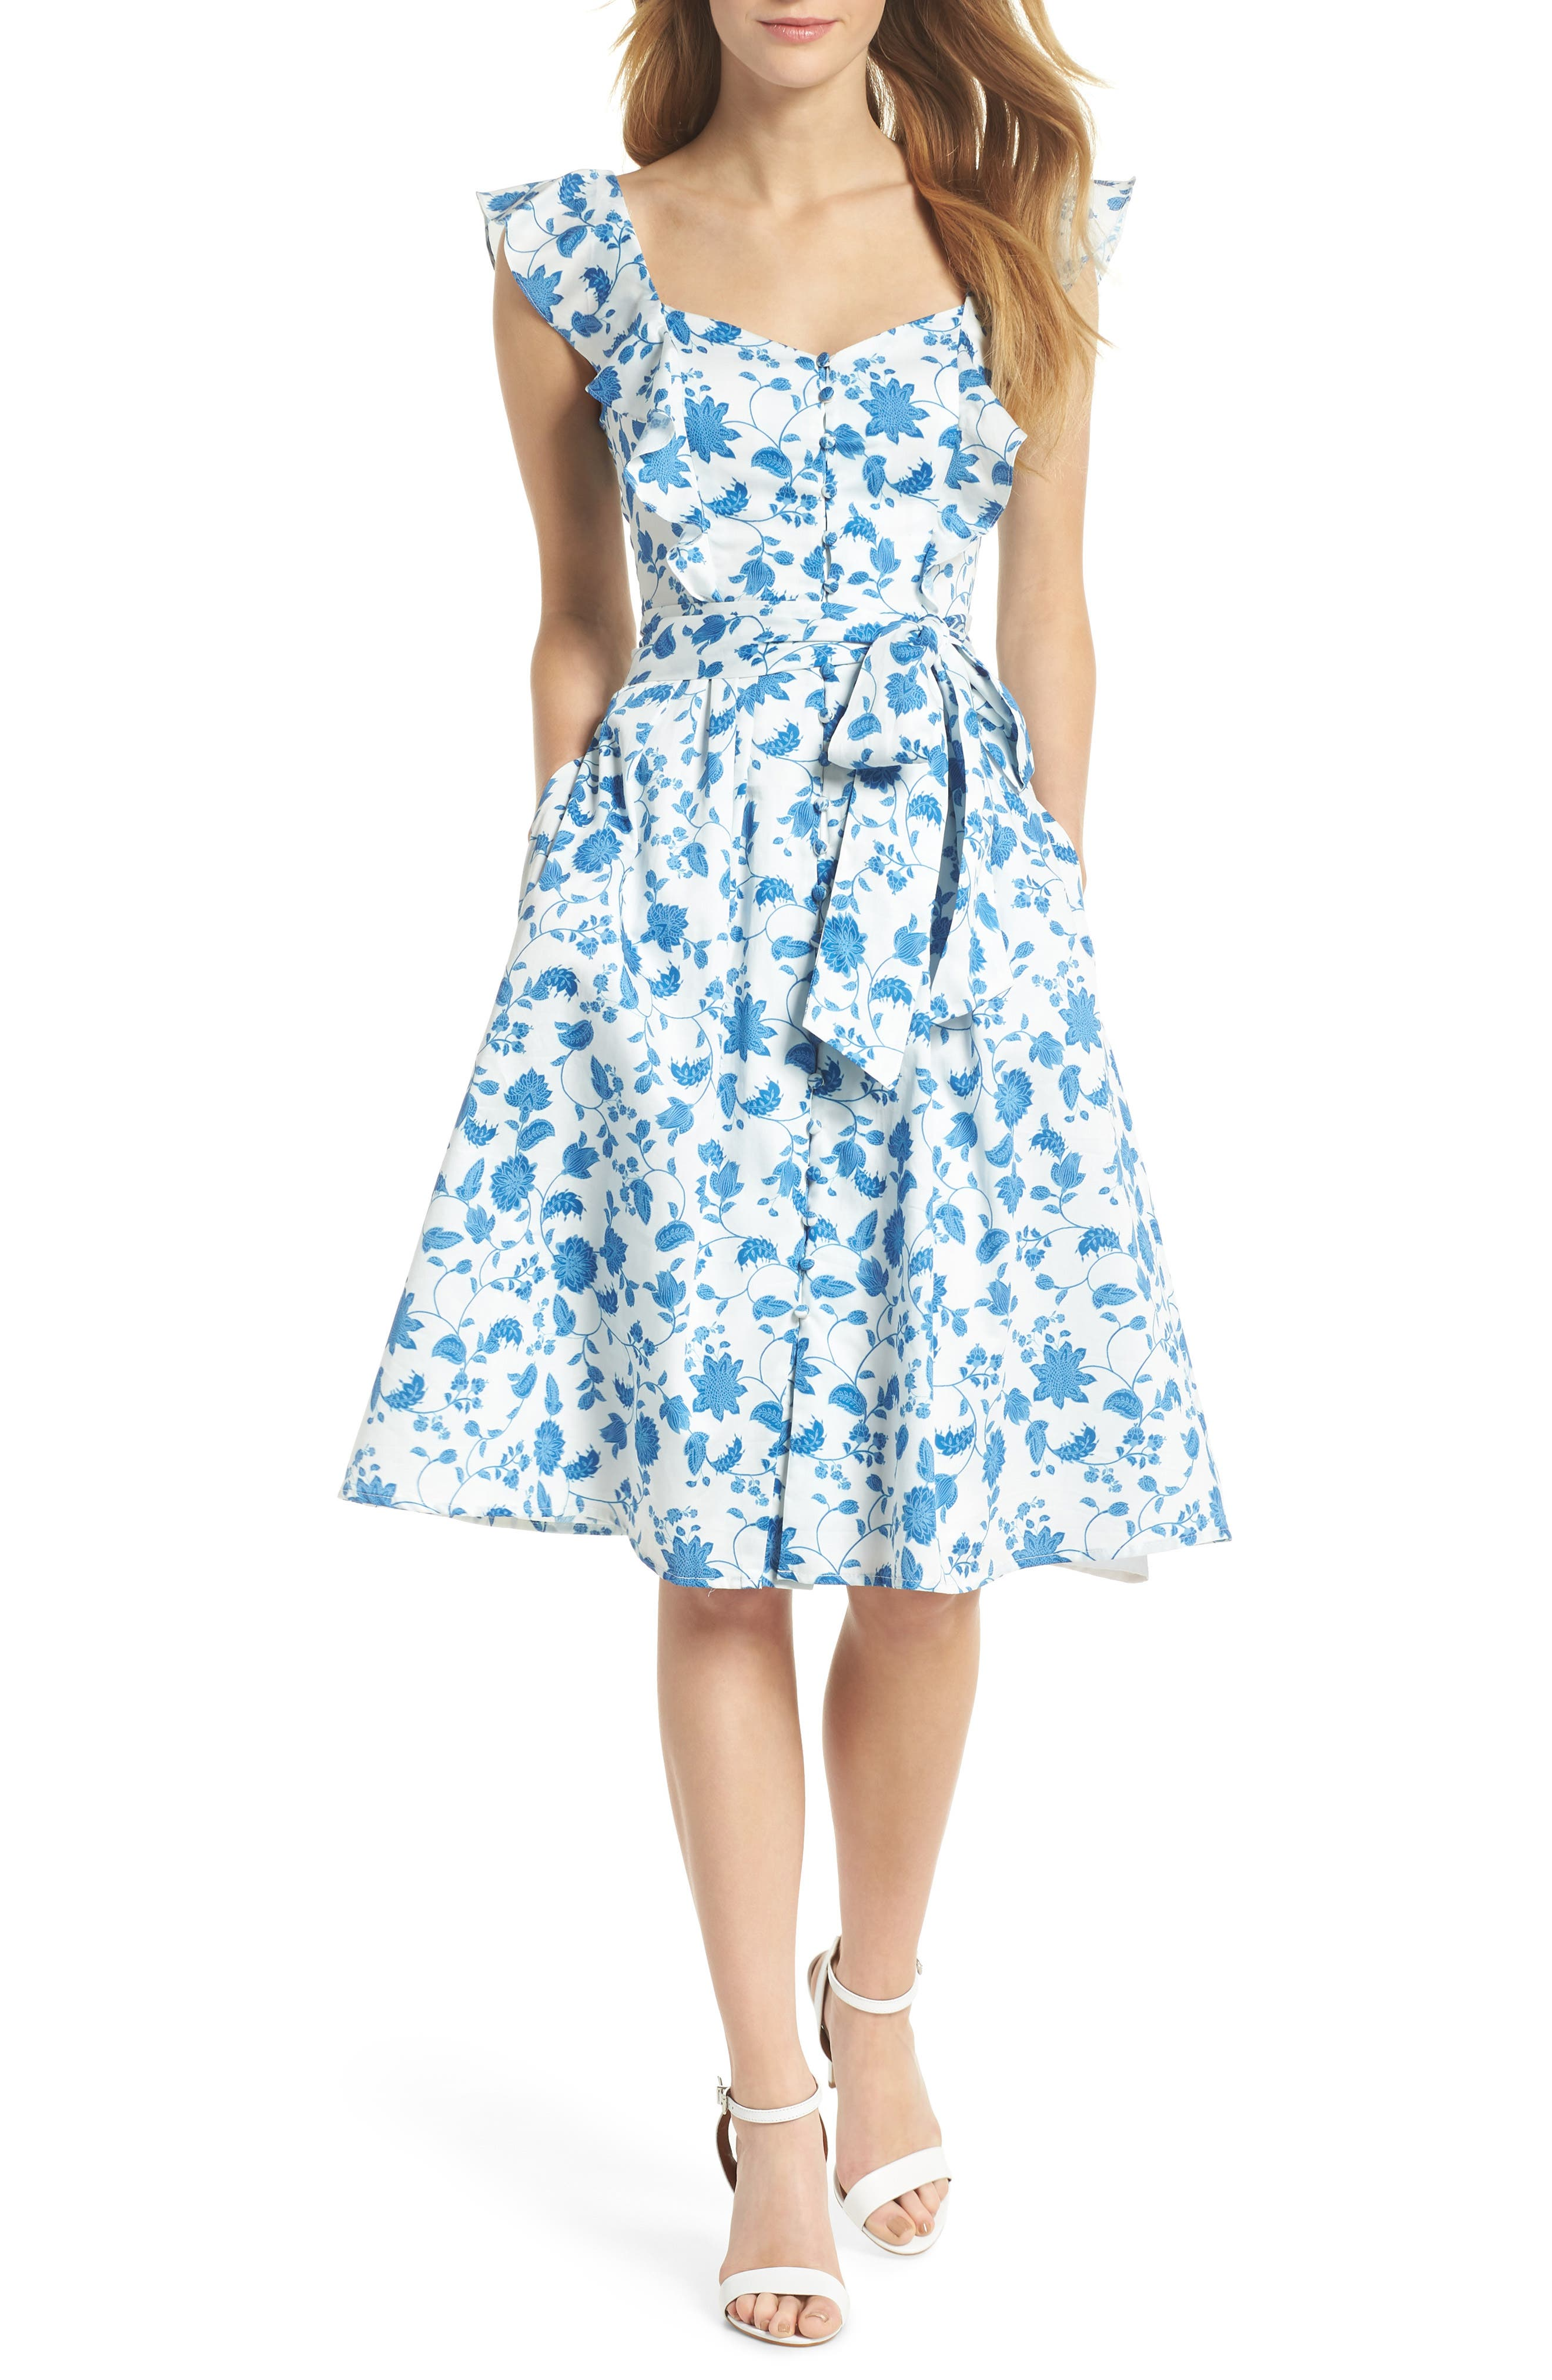 Olivia Floral Wallpaper Print Fit & Flare Dress,                             Main thumbnail 1, color,                             400